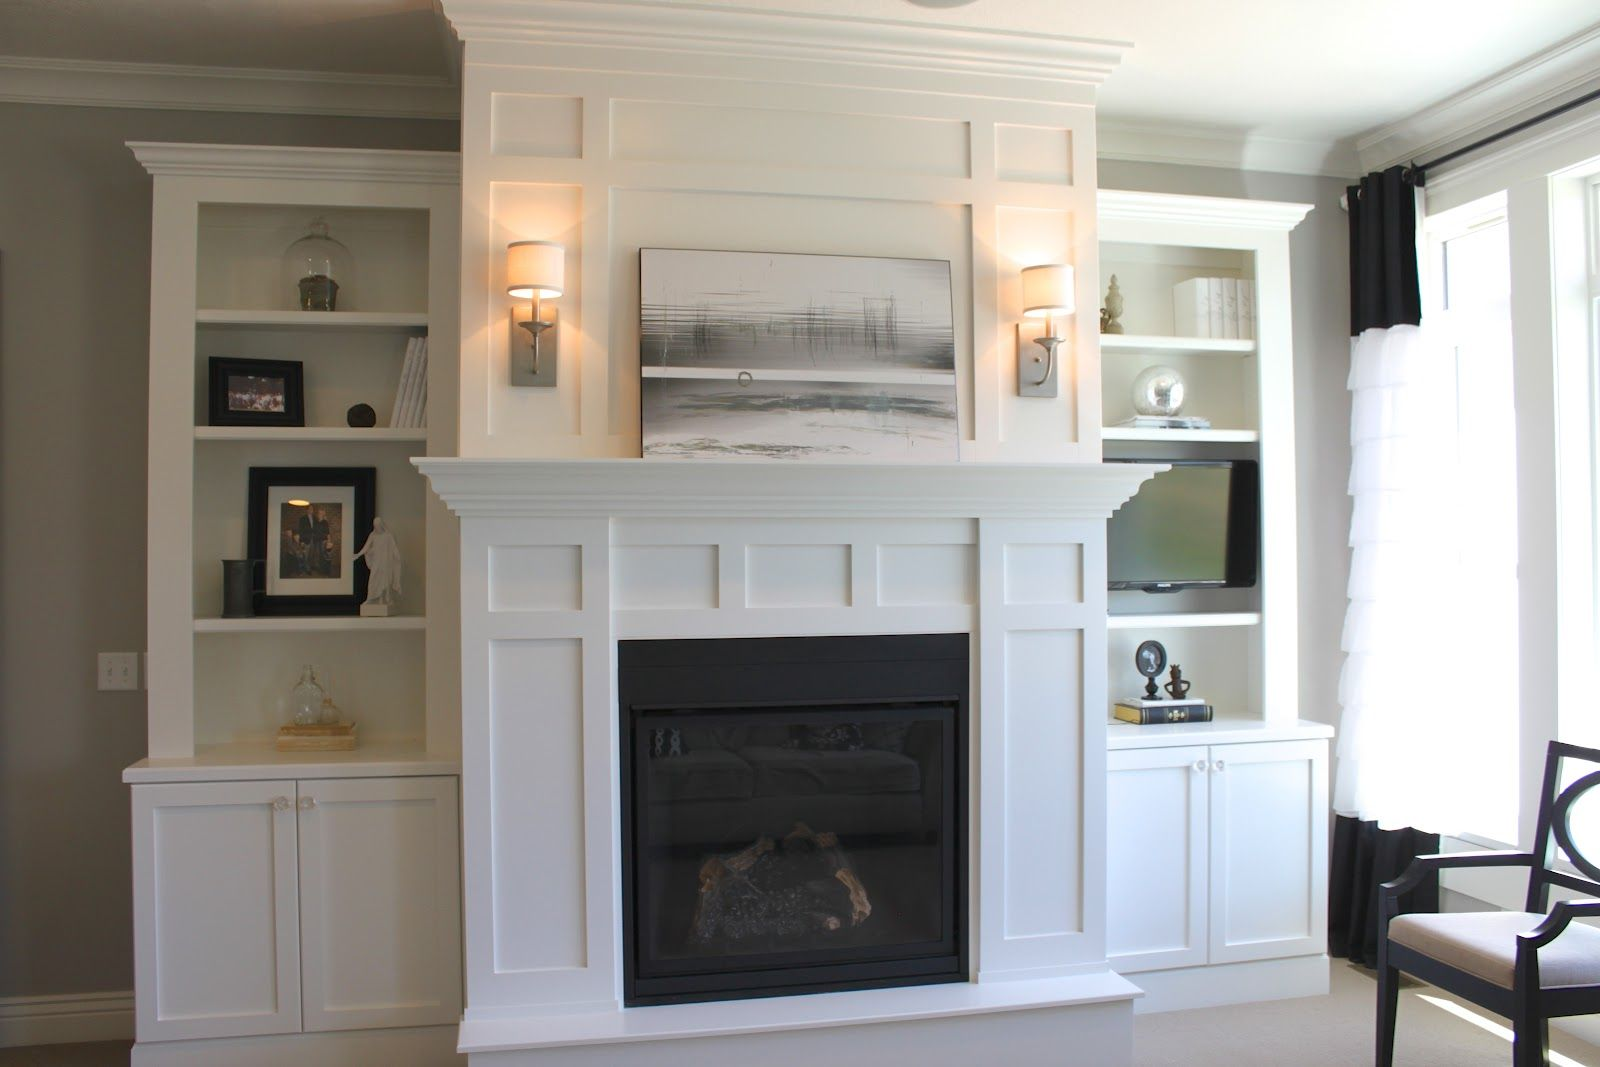 Fireplaces with bookshelves on each side the shelves around